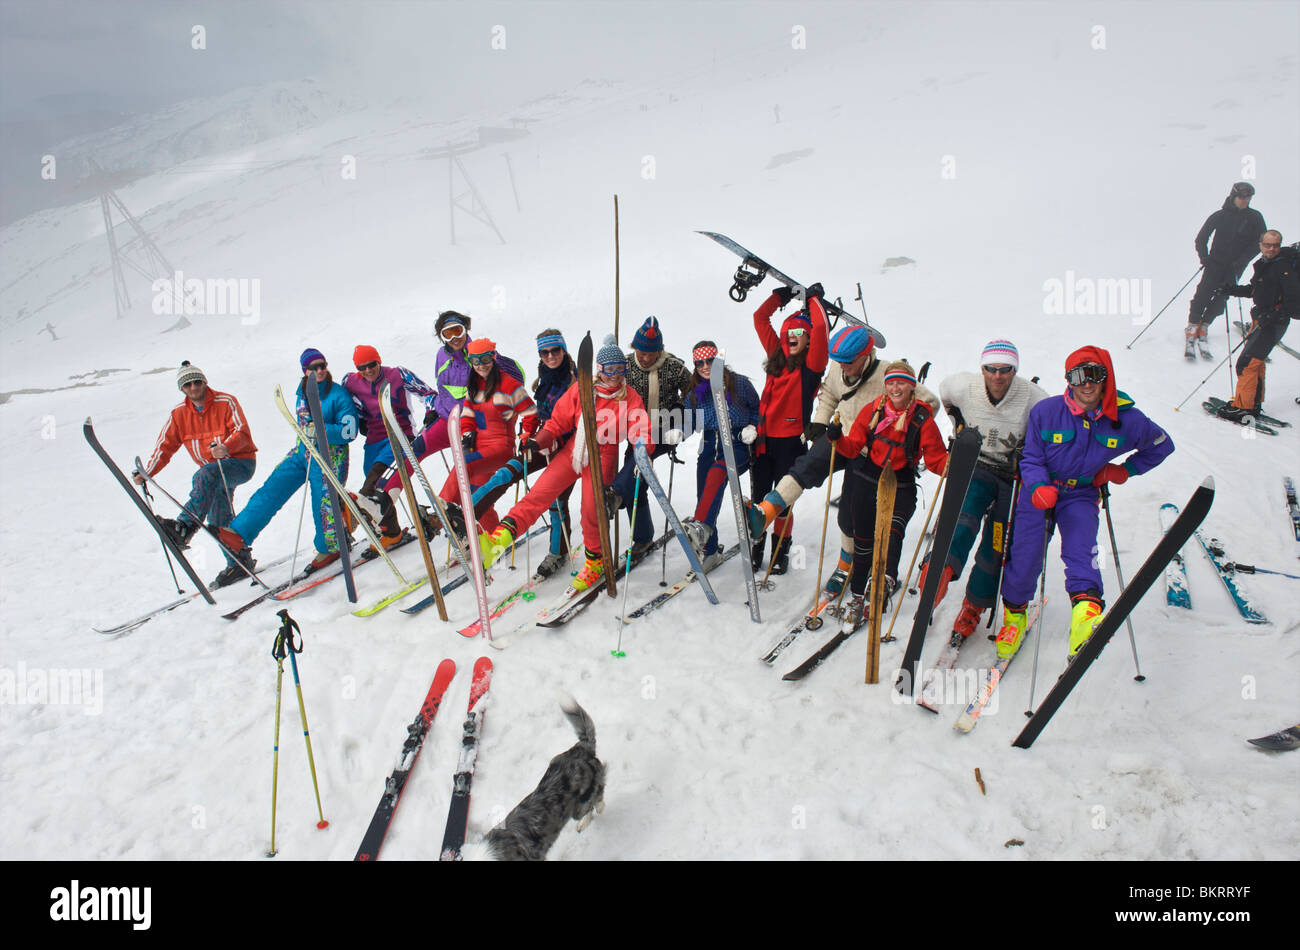 Slovakia, Jasna, group of instructors dressed up to the eighties celebrating the end of the season - Stock Image